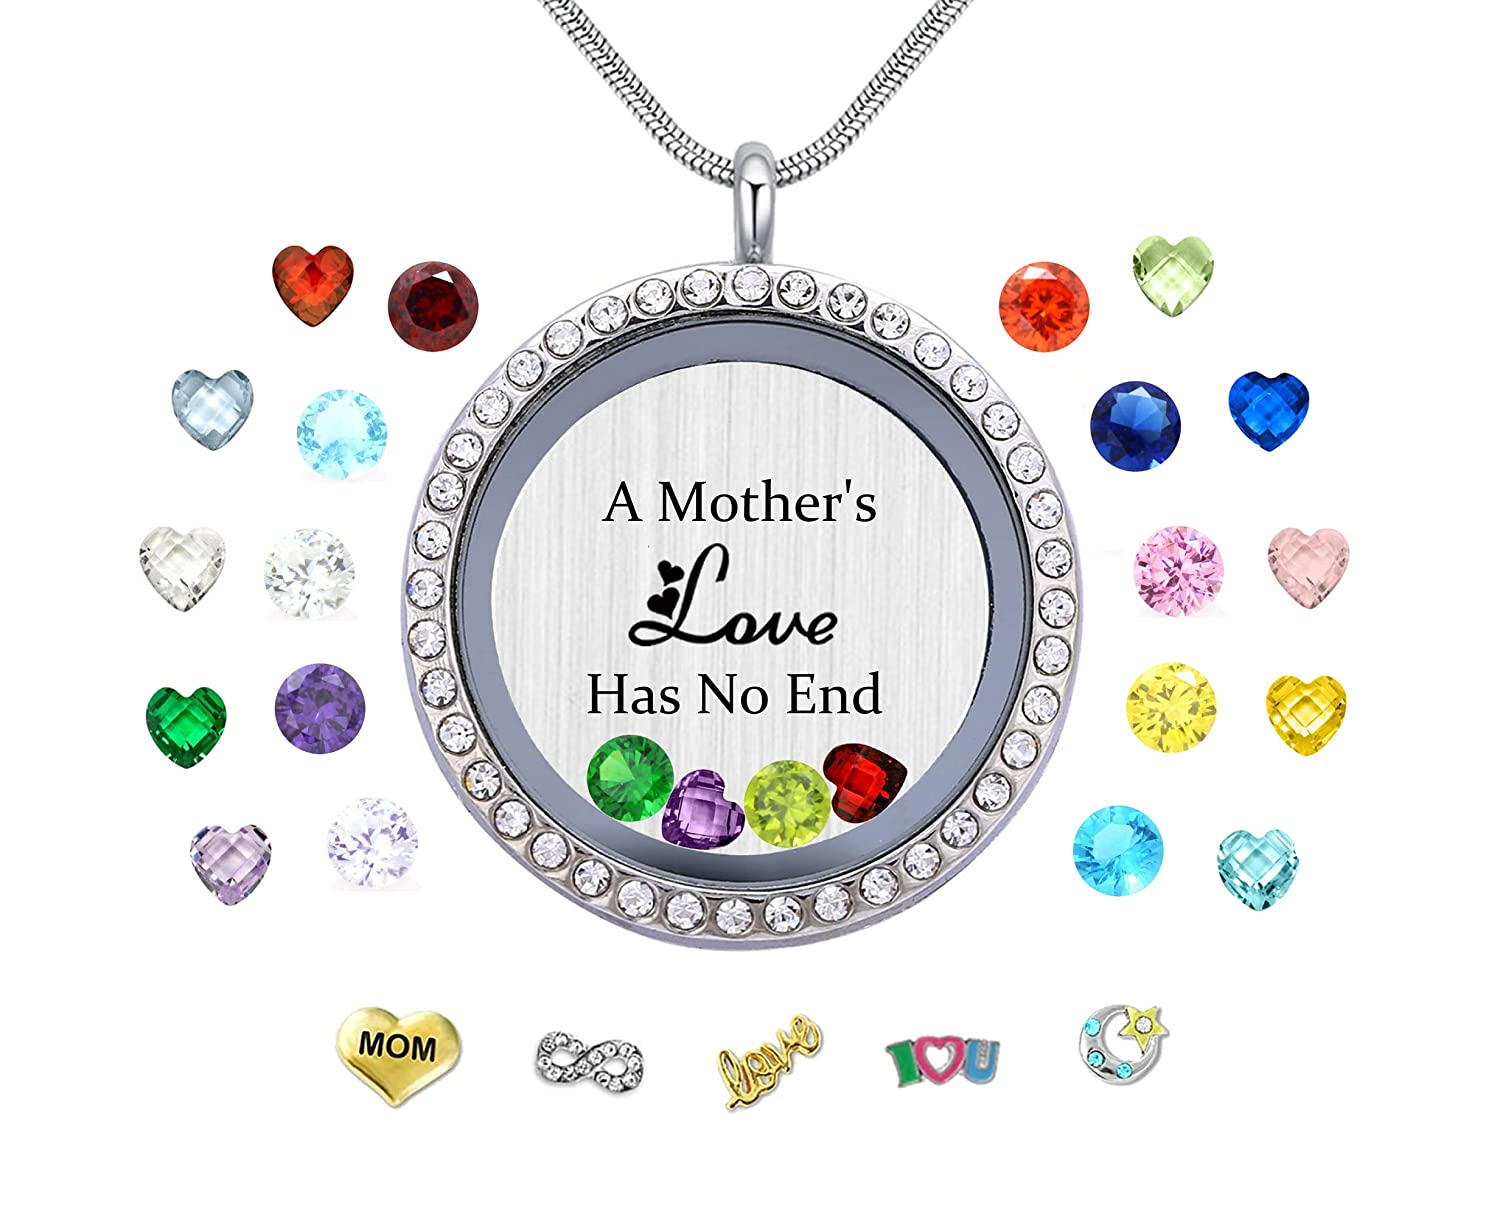 e958c4bb5 Amazon.com: Vinncy A Mothers Love Has No End Floating Locket Necklace  Pendant with Charms & 24PCS Birthstones, Mother's Day Birthday Xmas Gifts:  Jewelry